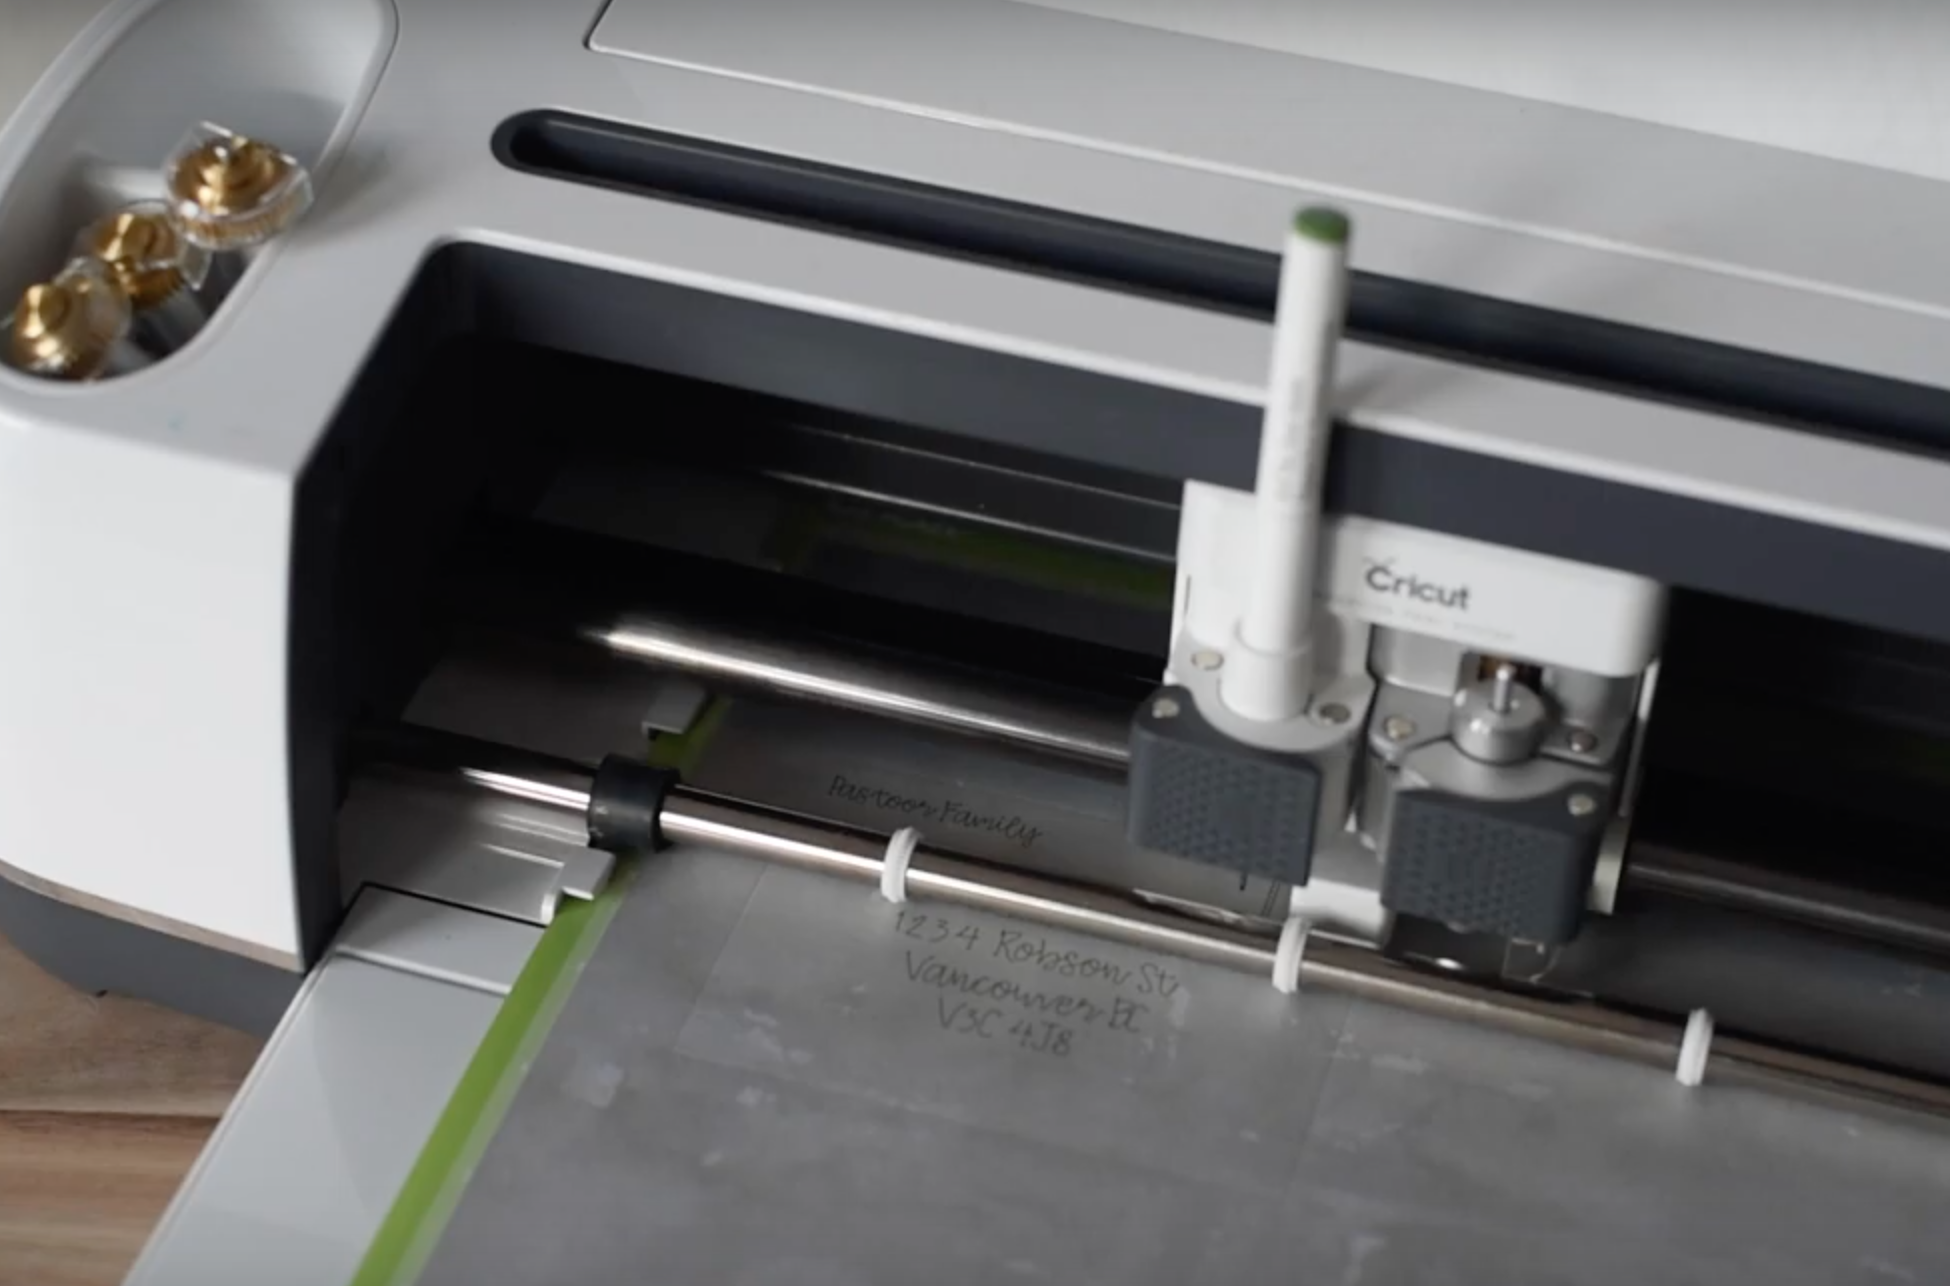 How to use cricut cut and draw tool at the same time